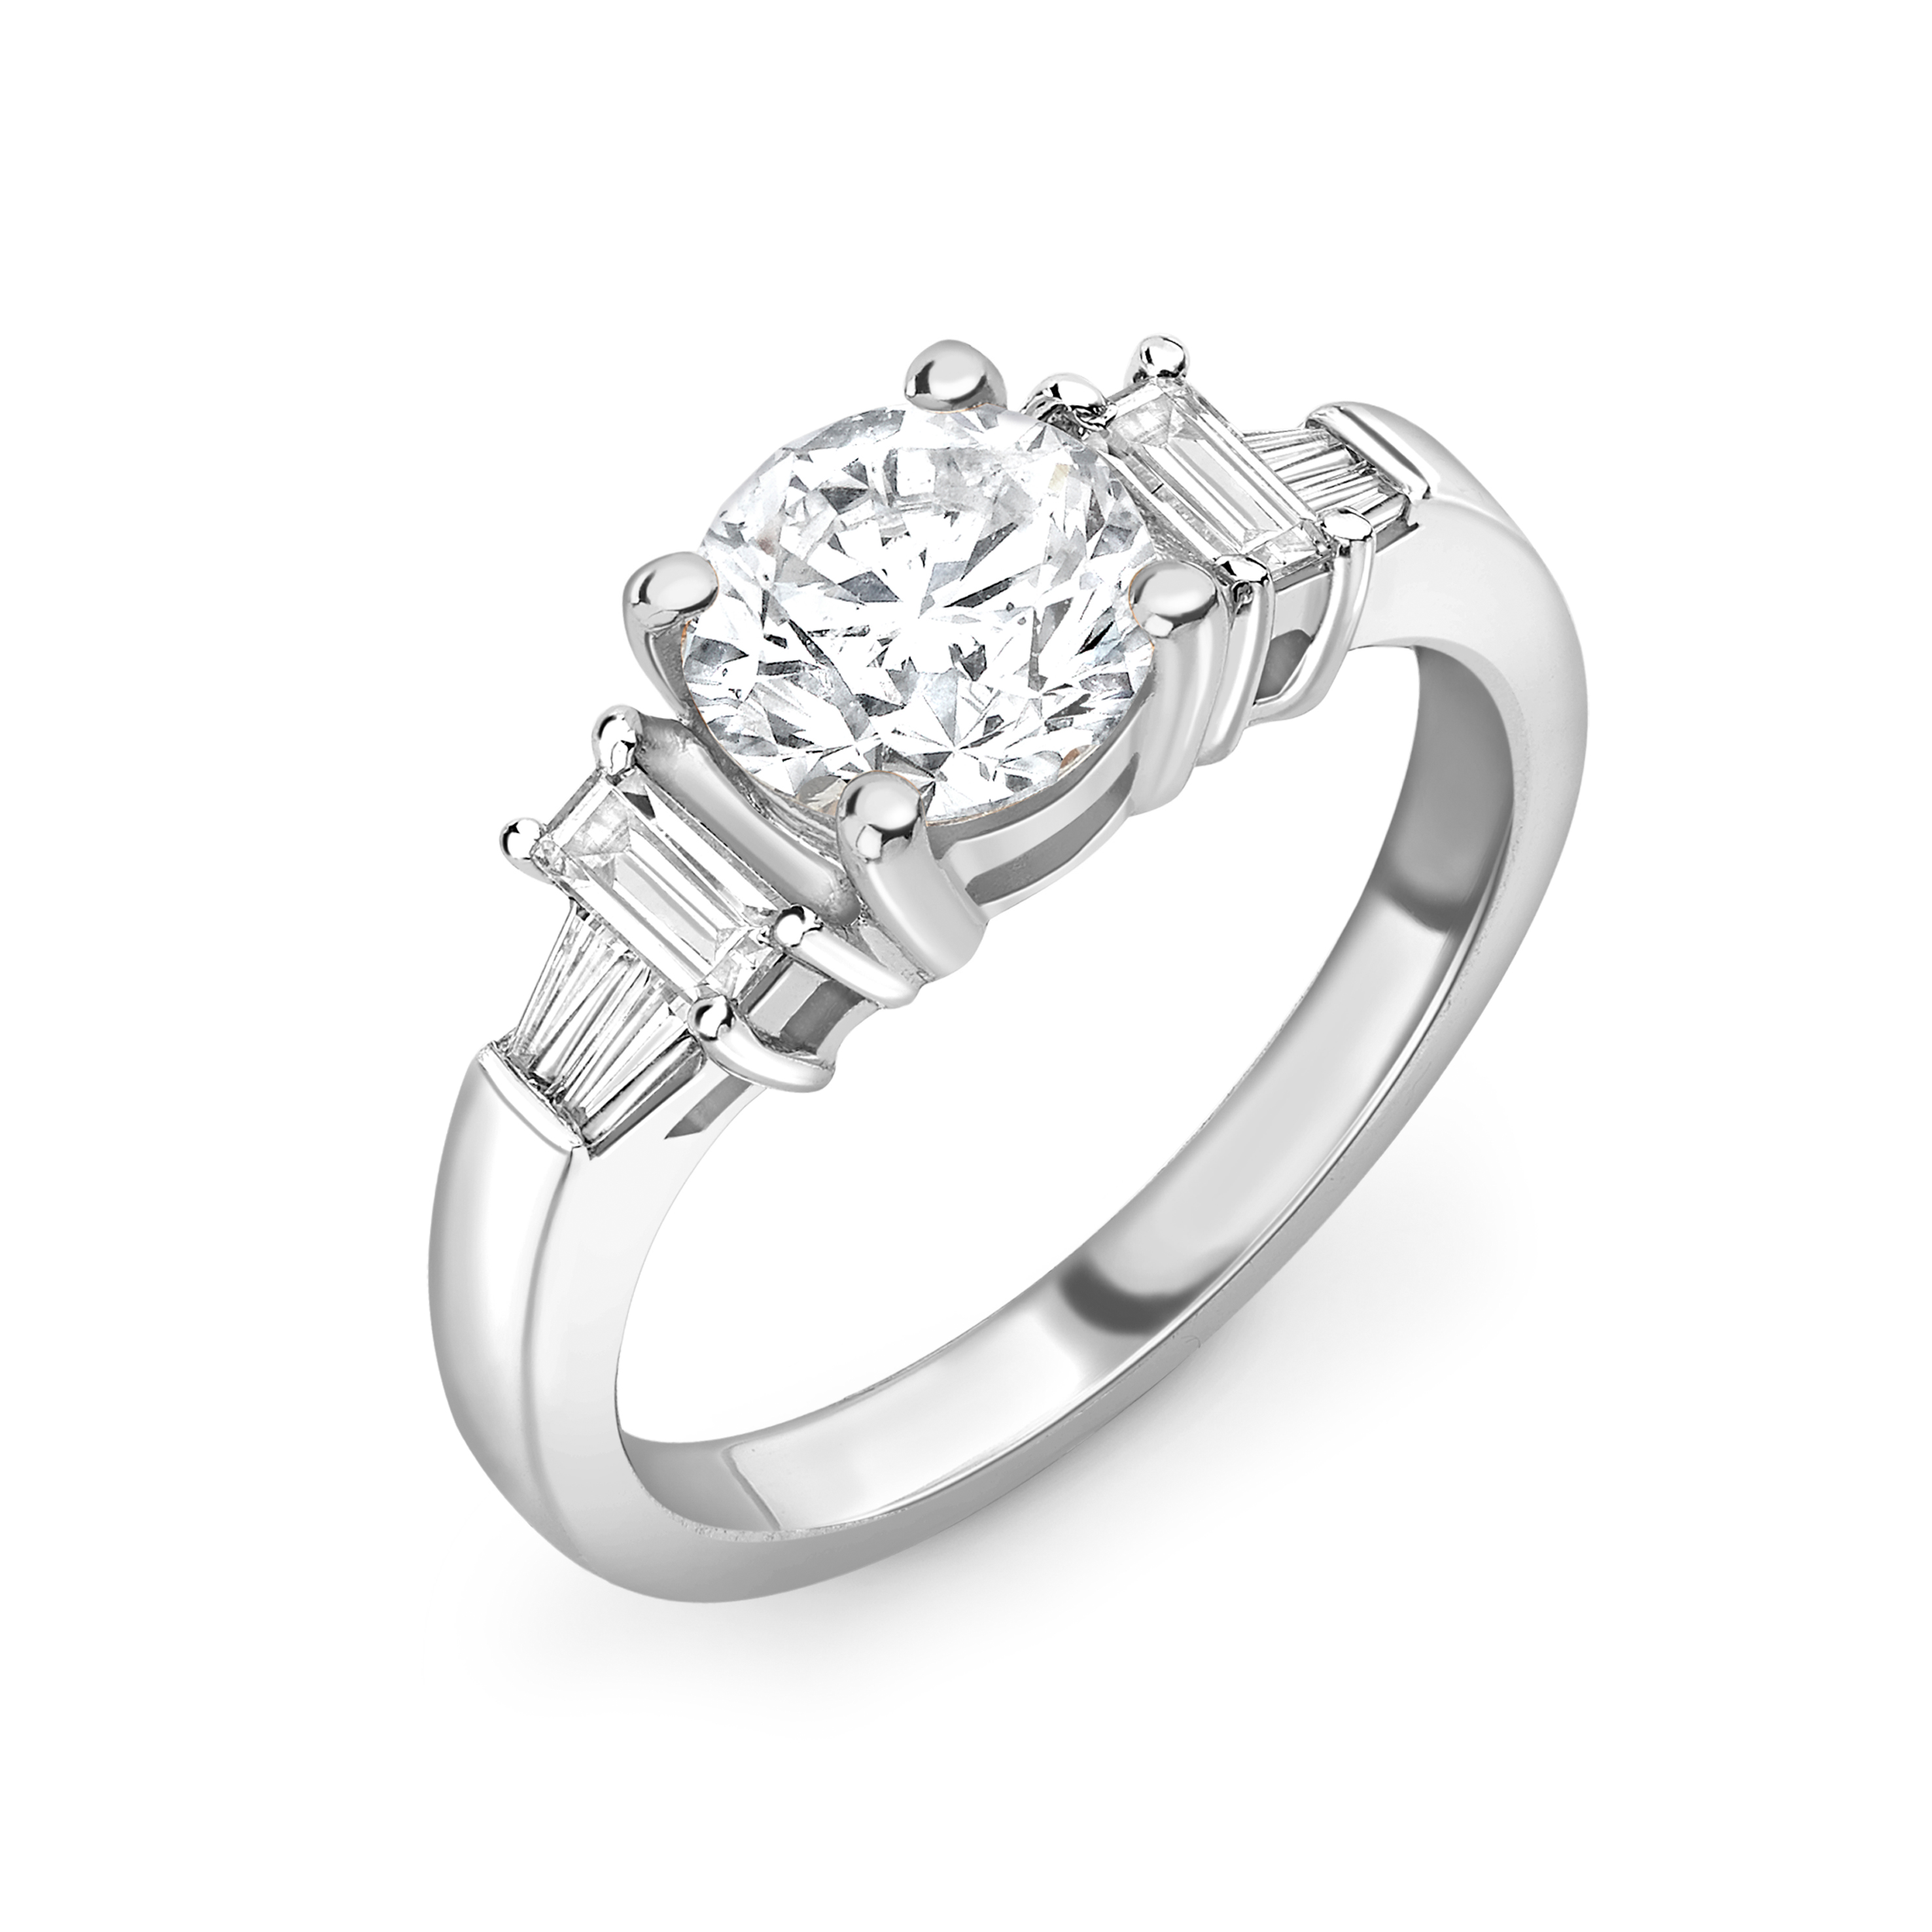 4 Prong Setting Round Shape Unique Baguette Diamond on Shoulder Halo Diamond Engagement Rings